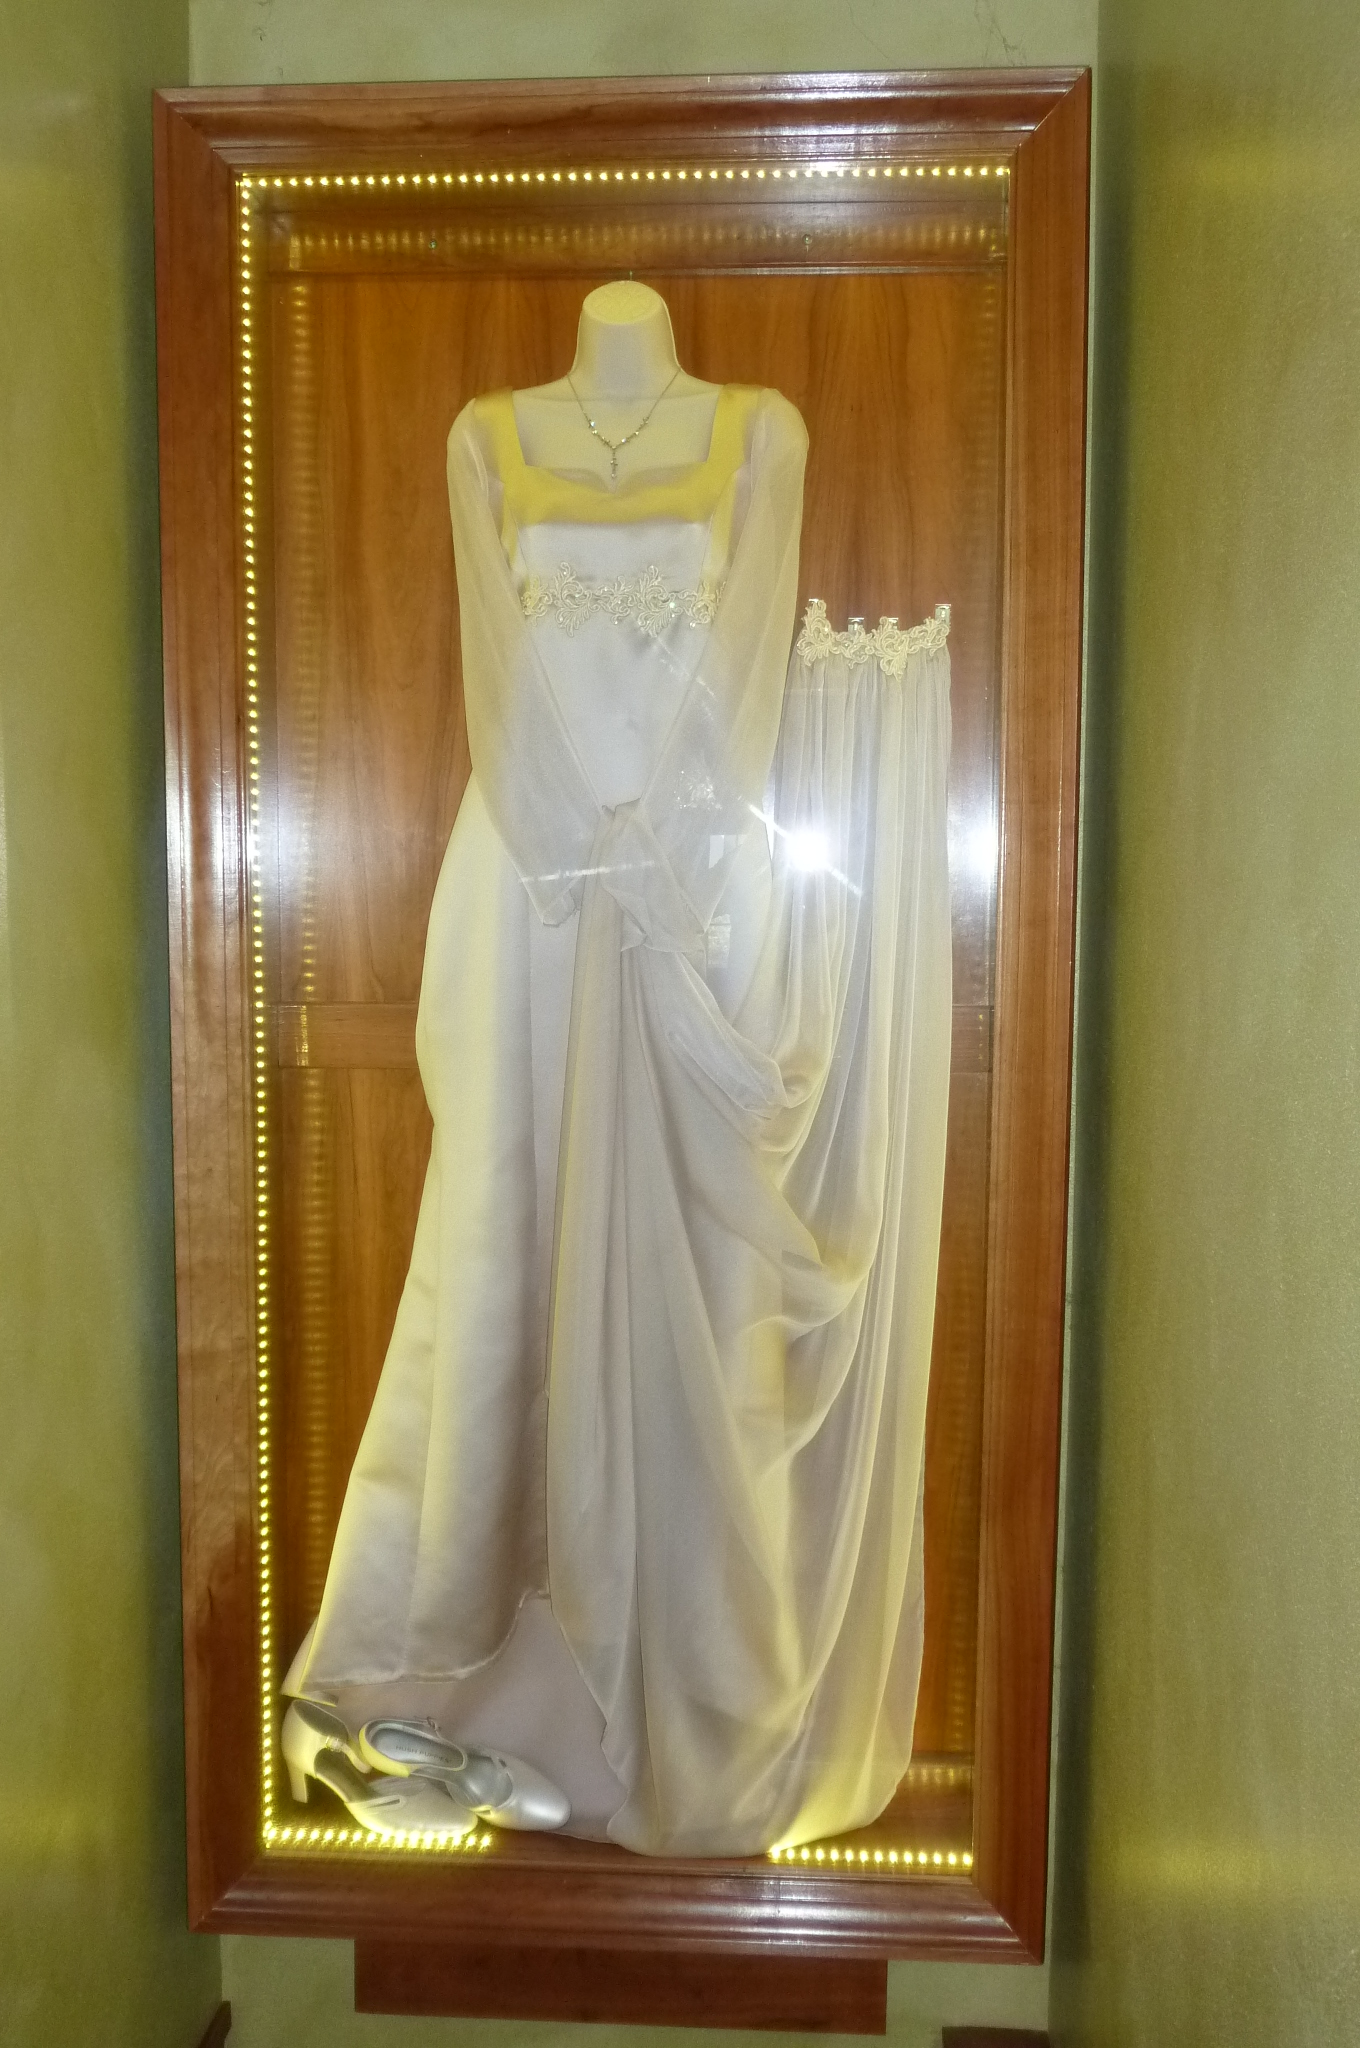 Odds ends gallery abc design concepts llc interior for Wedding dress shadow box